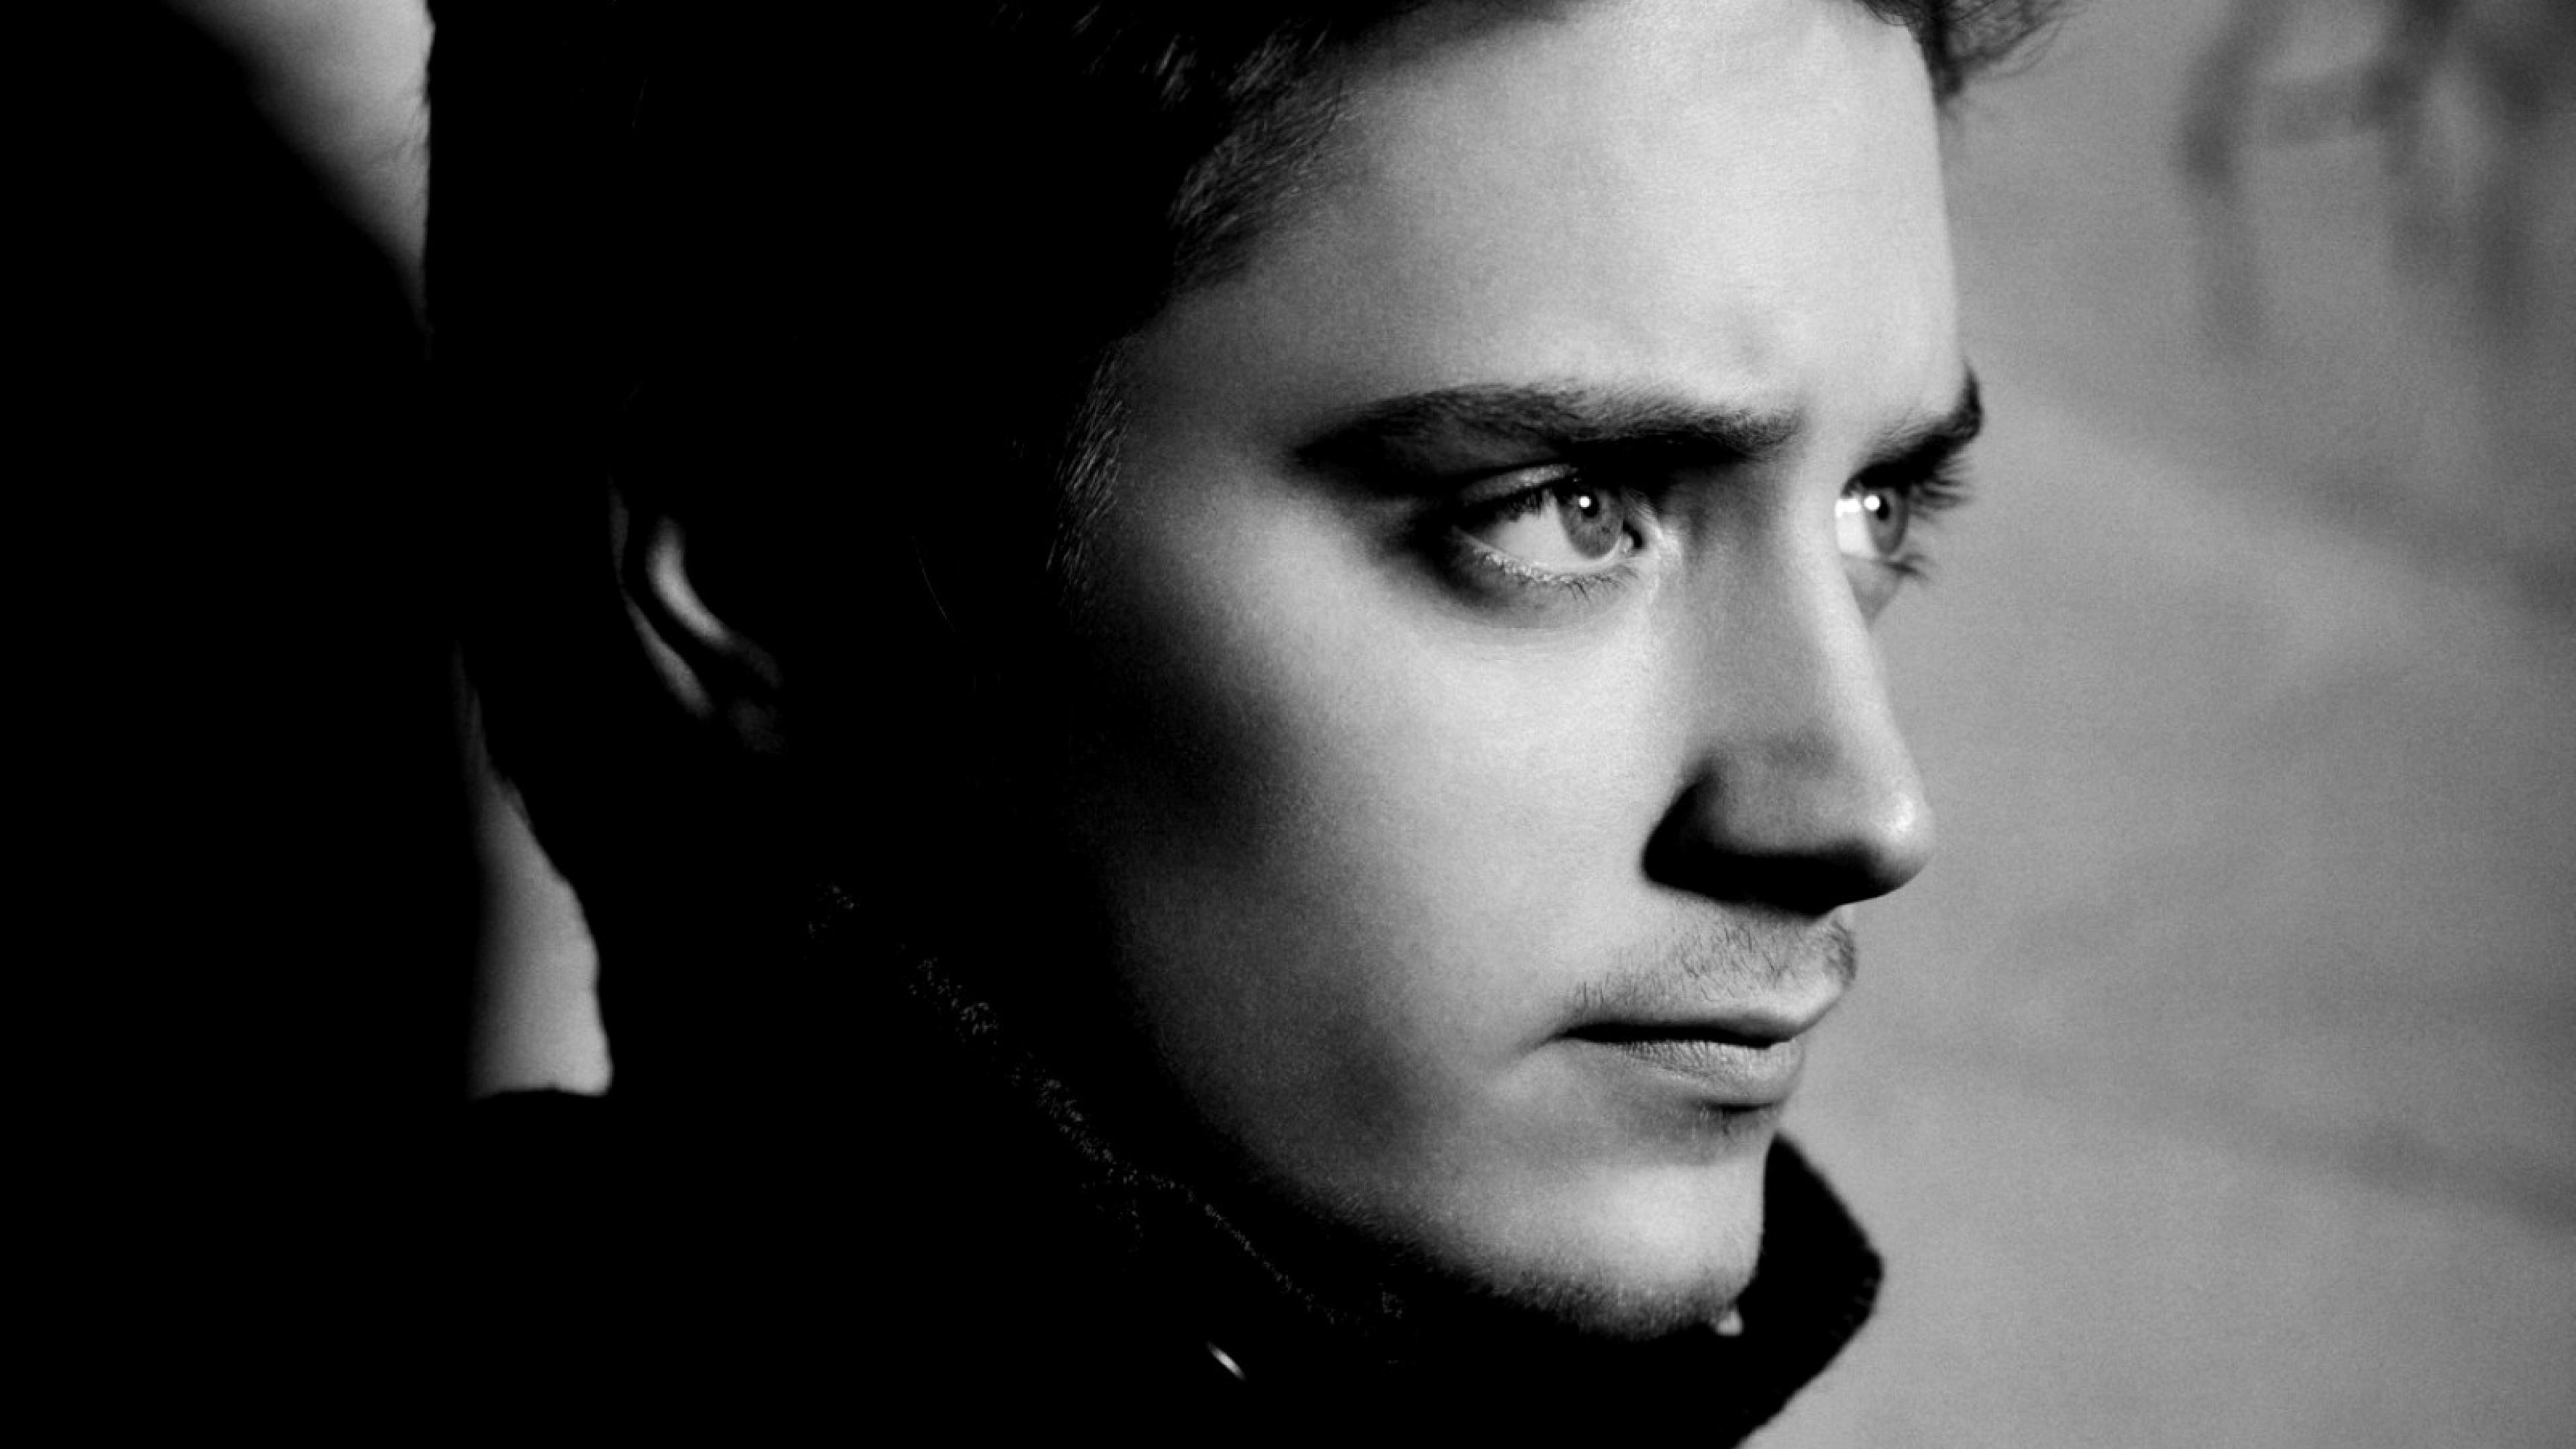 Elijah Wood Wallpapers, Pictures, Image